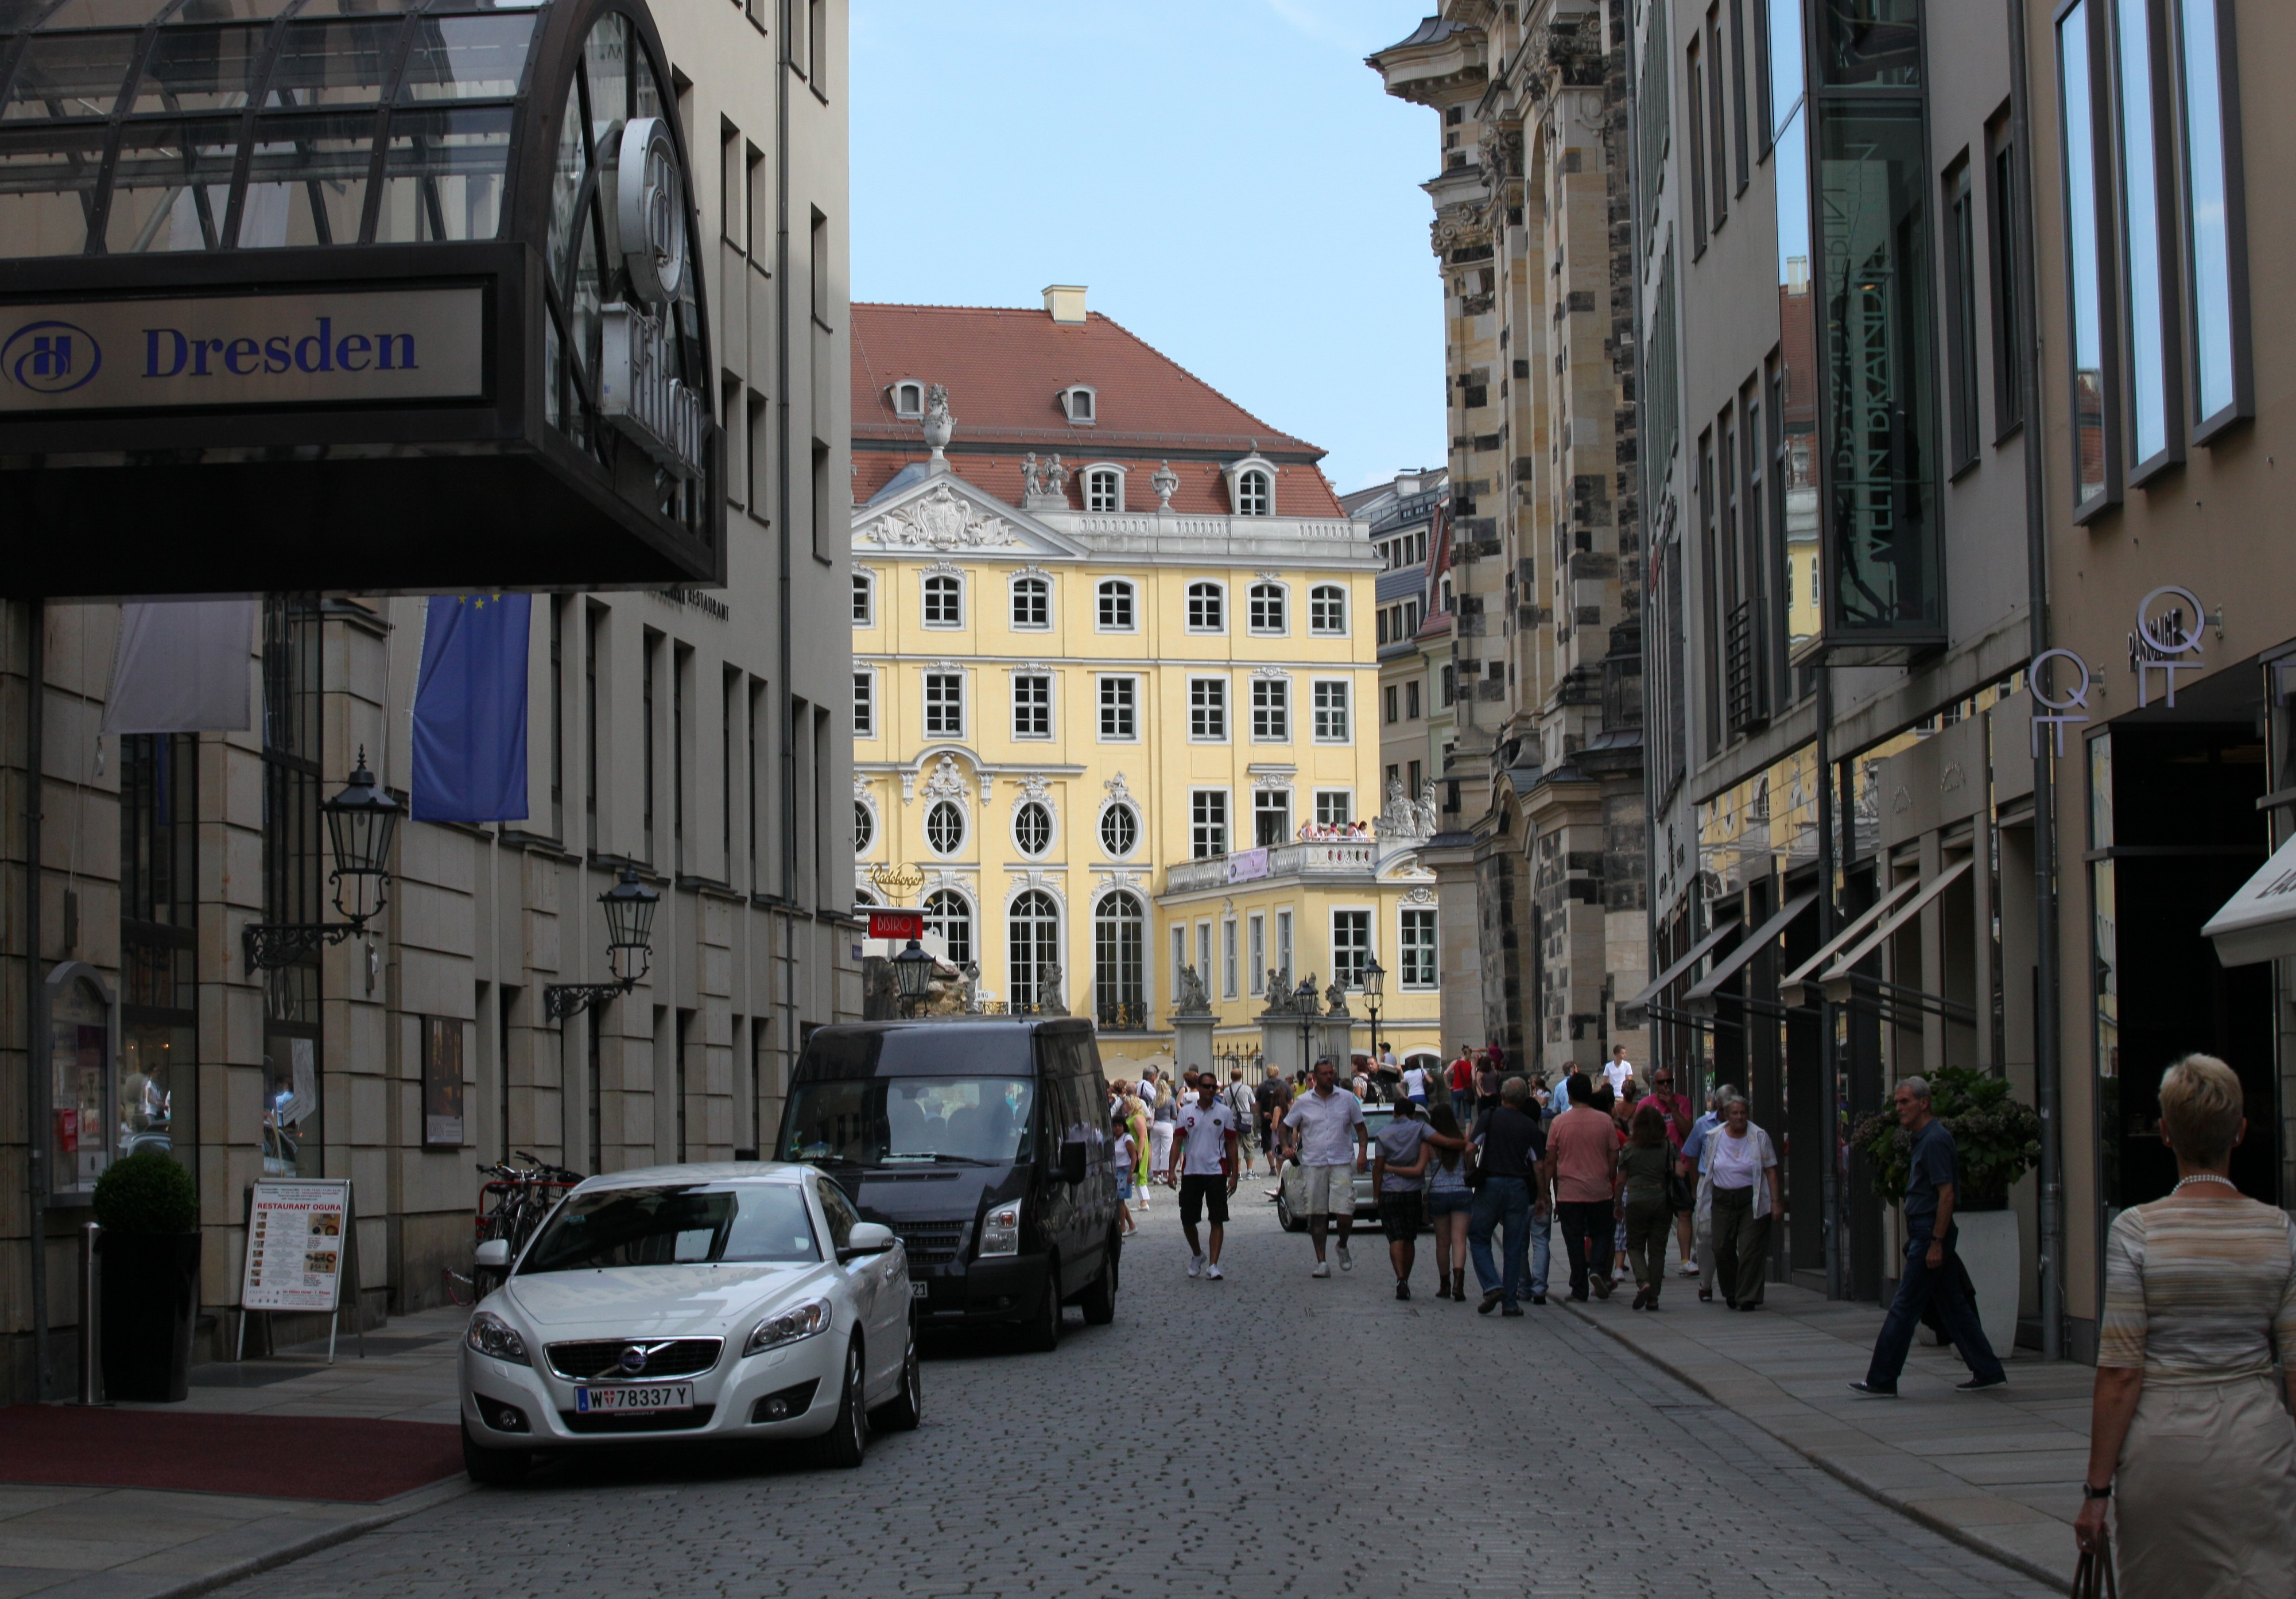 Dresden, Germany, Europe, August 2013, picture 47